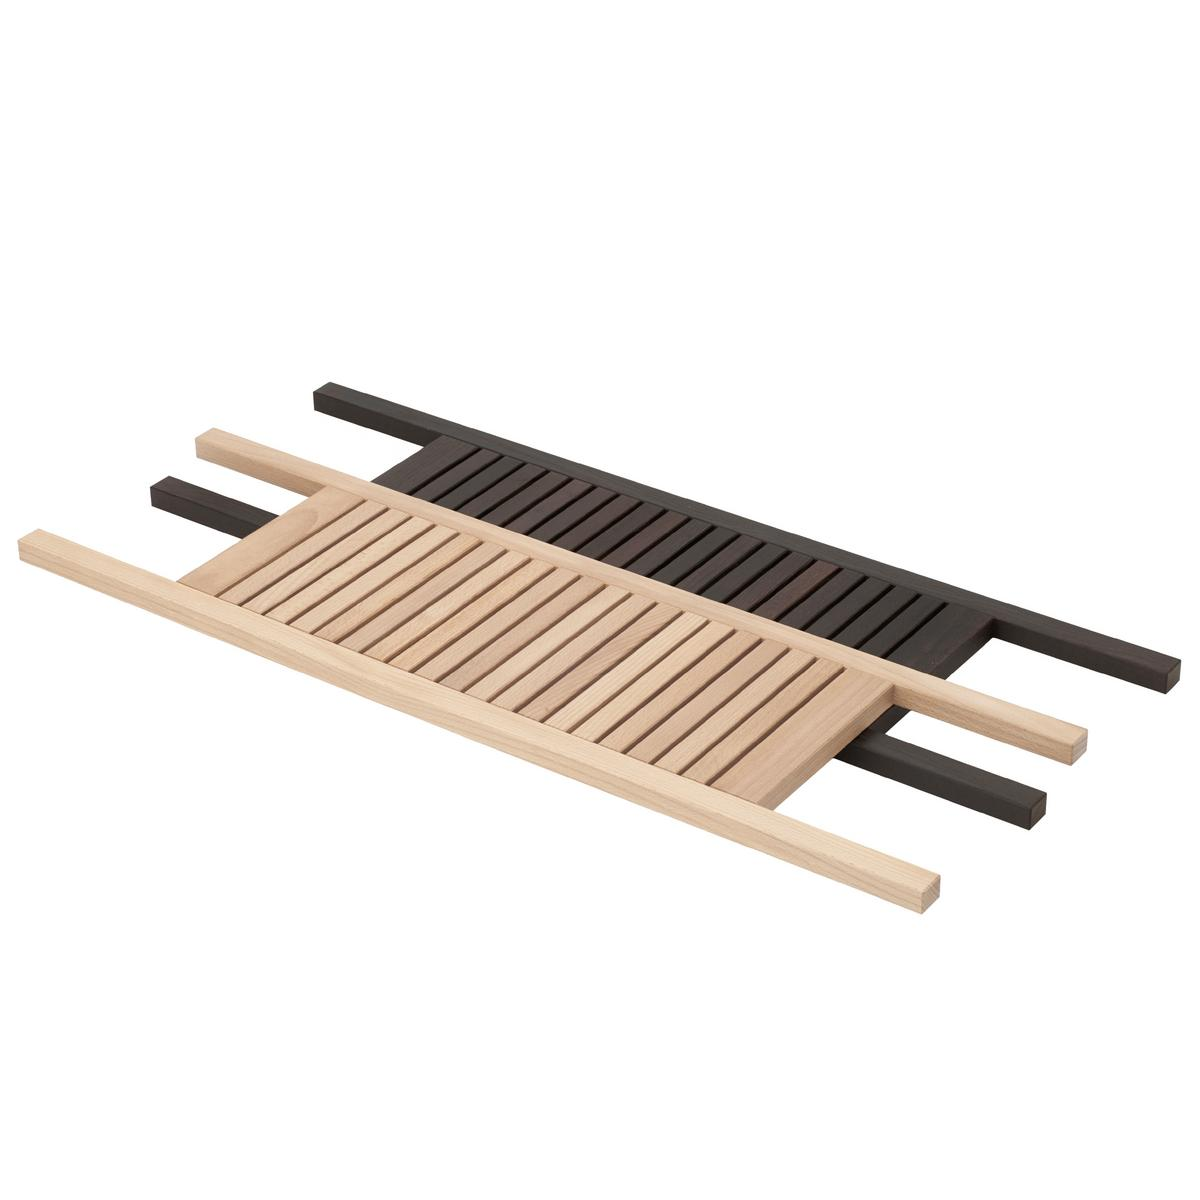 Decor walther wood bath trays for Aana decoration decorative tray